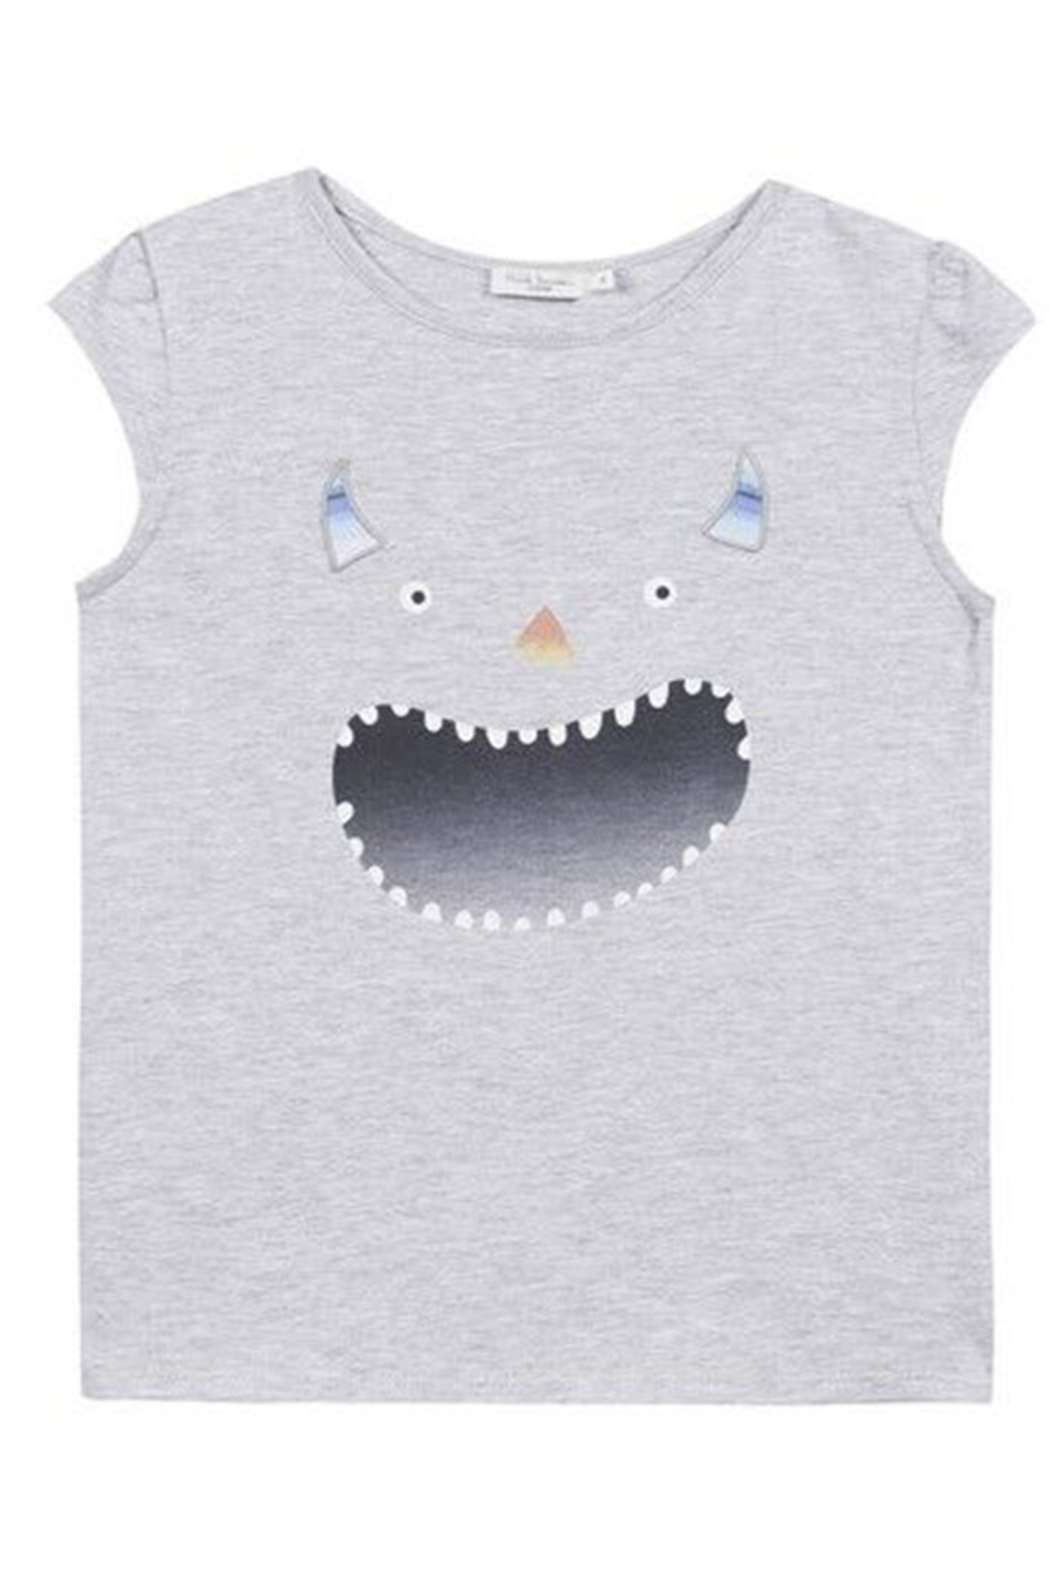 Paul Smith 2-6 Years Monster Shirt - Front Cropped Image